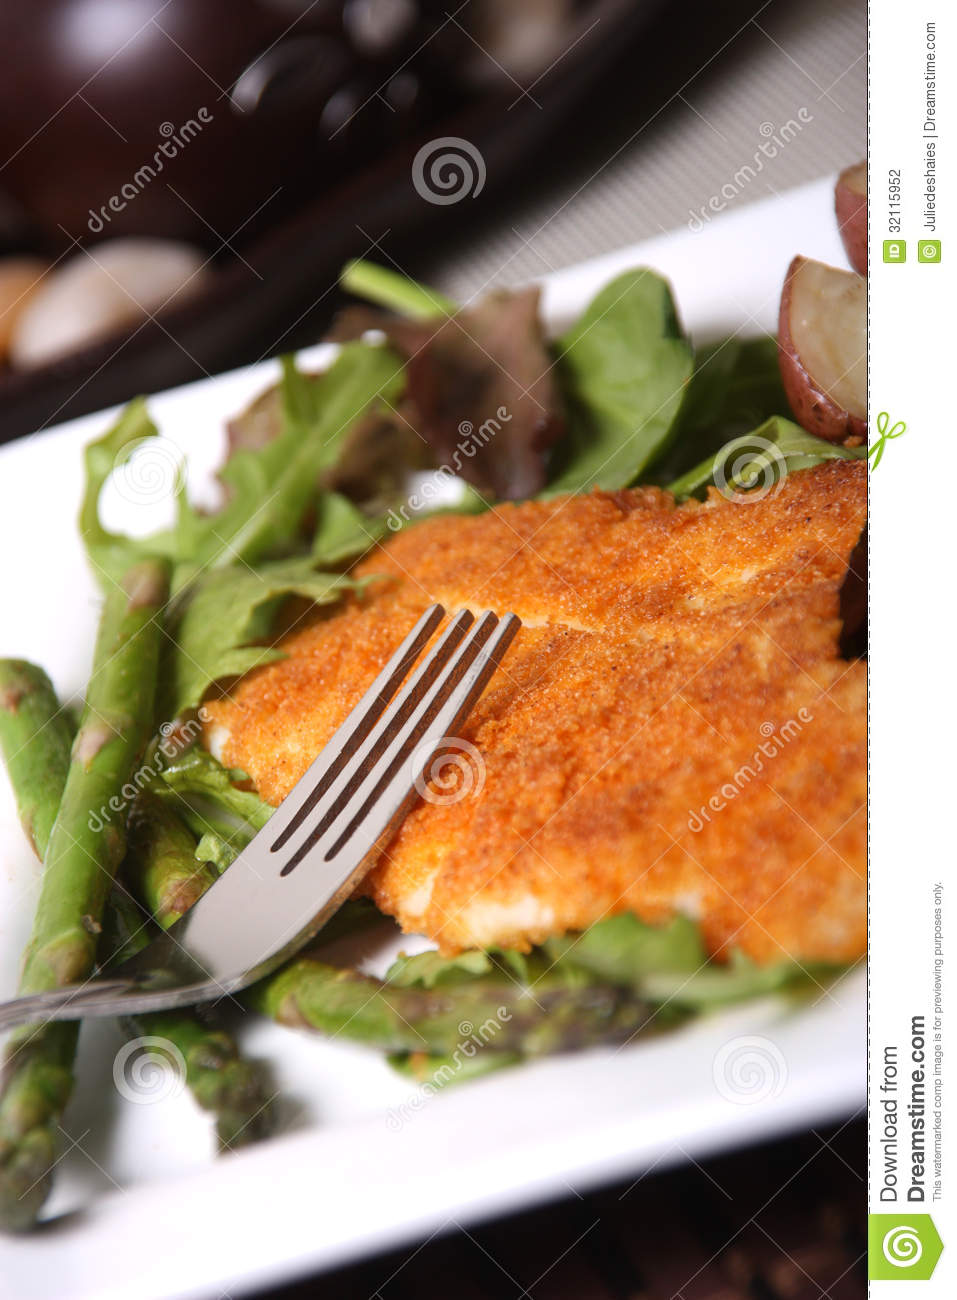 Sole fish fillet stock photography image 32115952 for Sole fish fillet